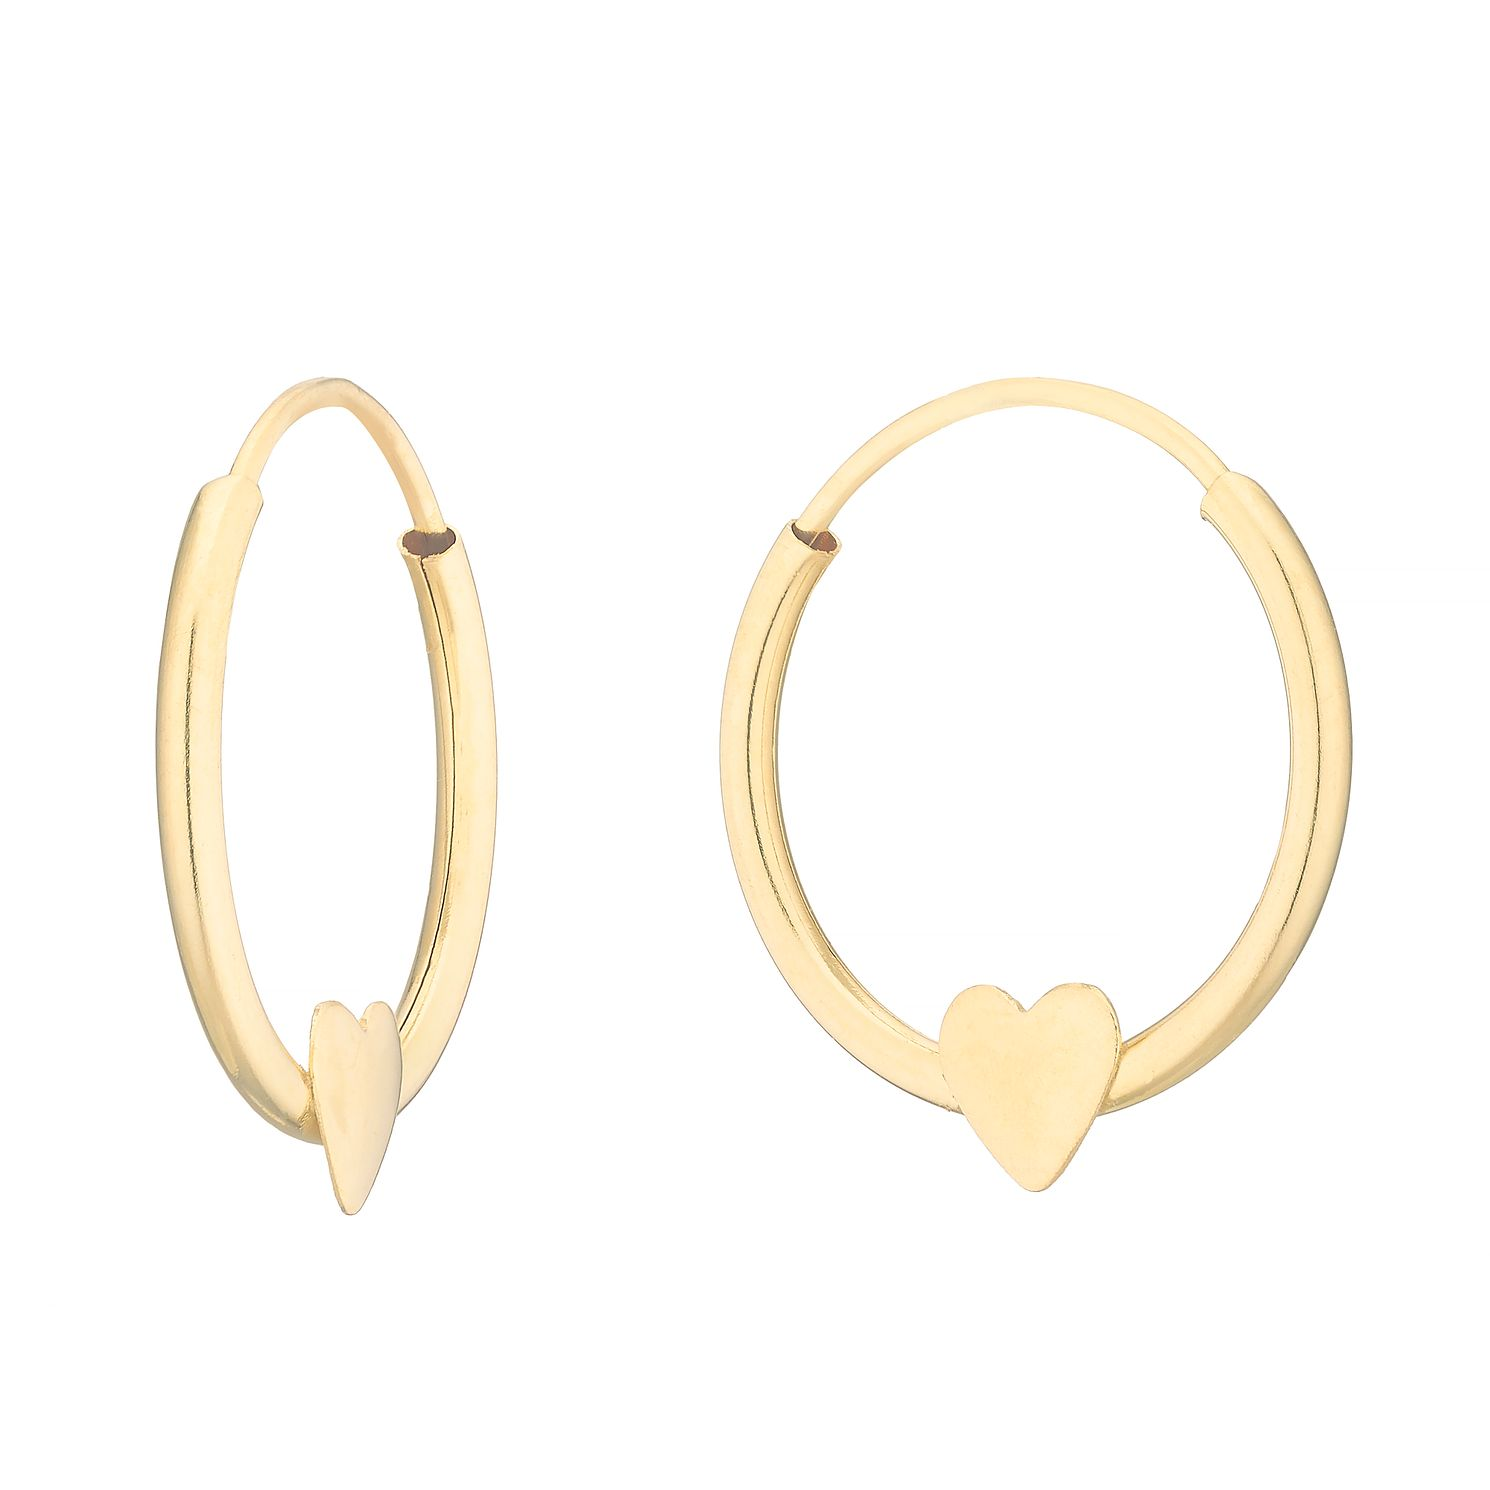 9ct Yellow Gold Heart 10mm Sleeper Earrings - Product number 4663373